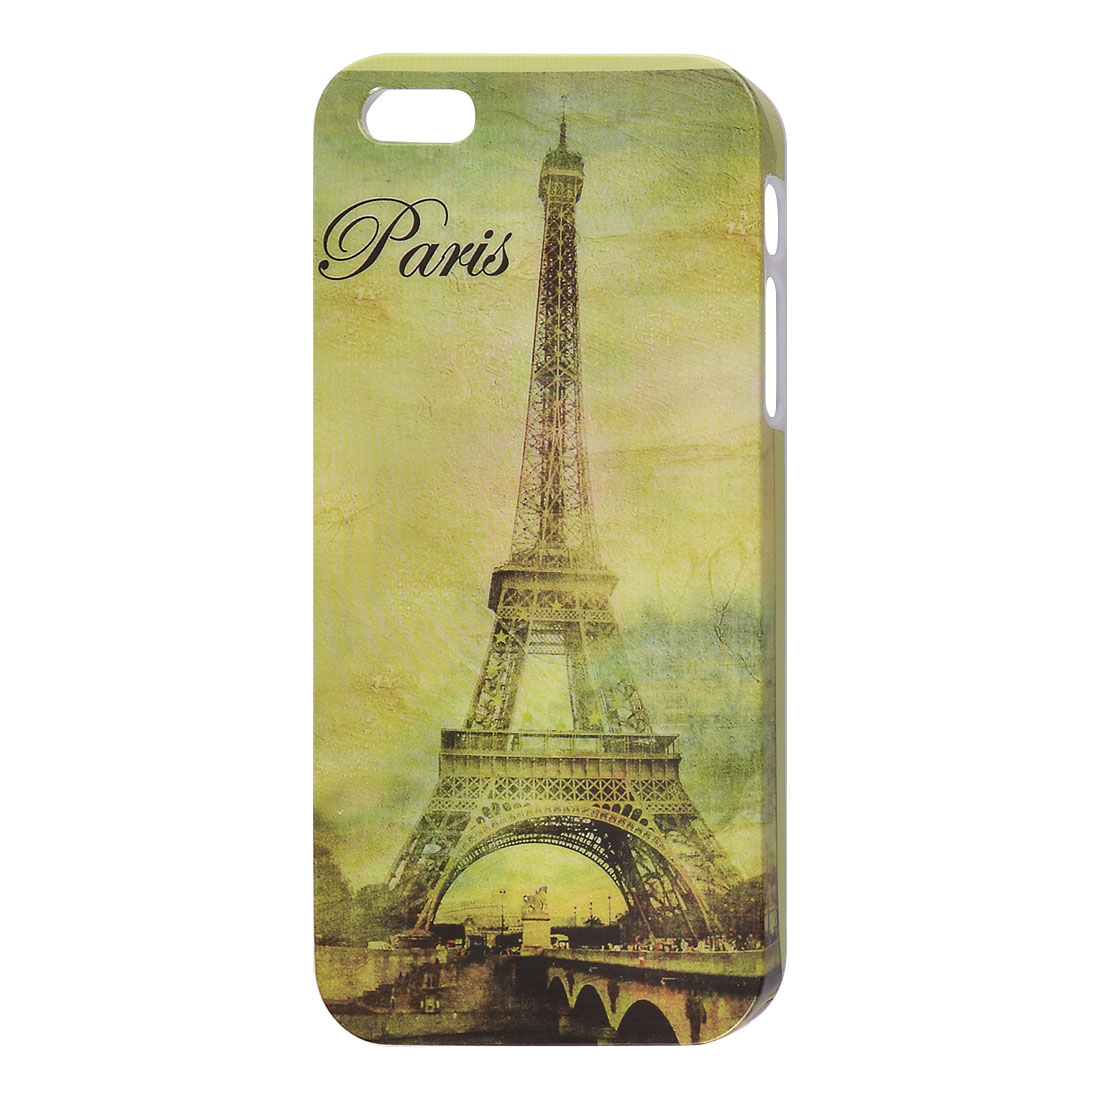 Paris Eiffel Tower Design Pale Green IMD Hard Back Case Cover for Apple iPhone 5 5G